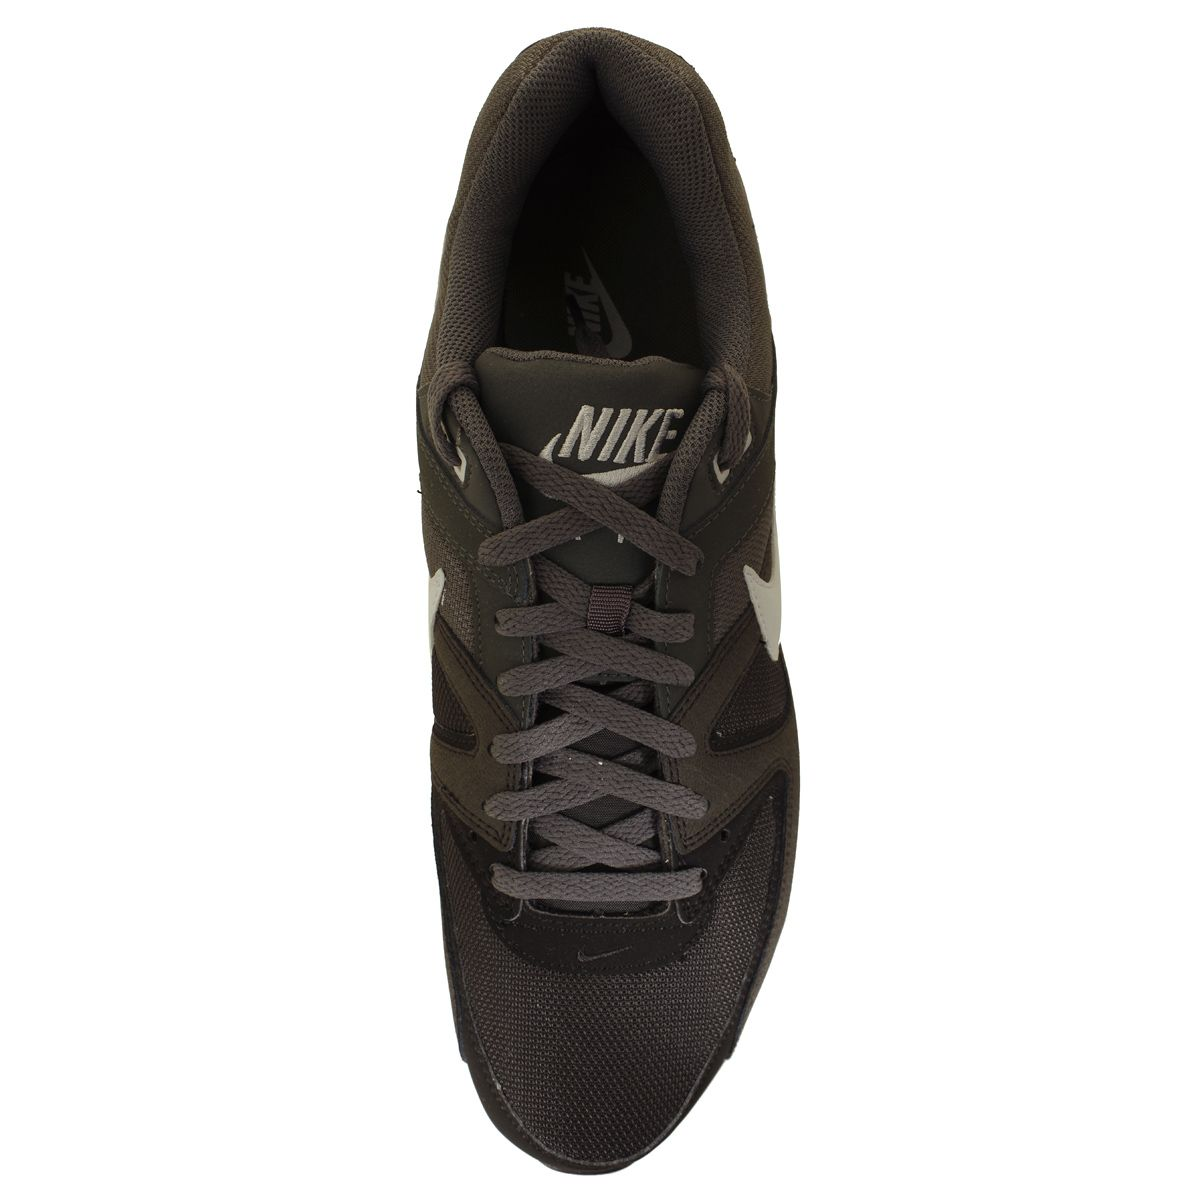 Cheap Nike Air Max 87 Puma Los Angeles Factory Outlet, Reebok Jacke